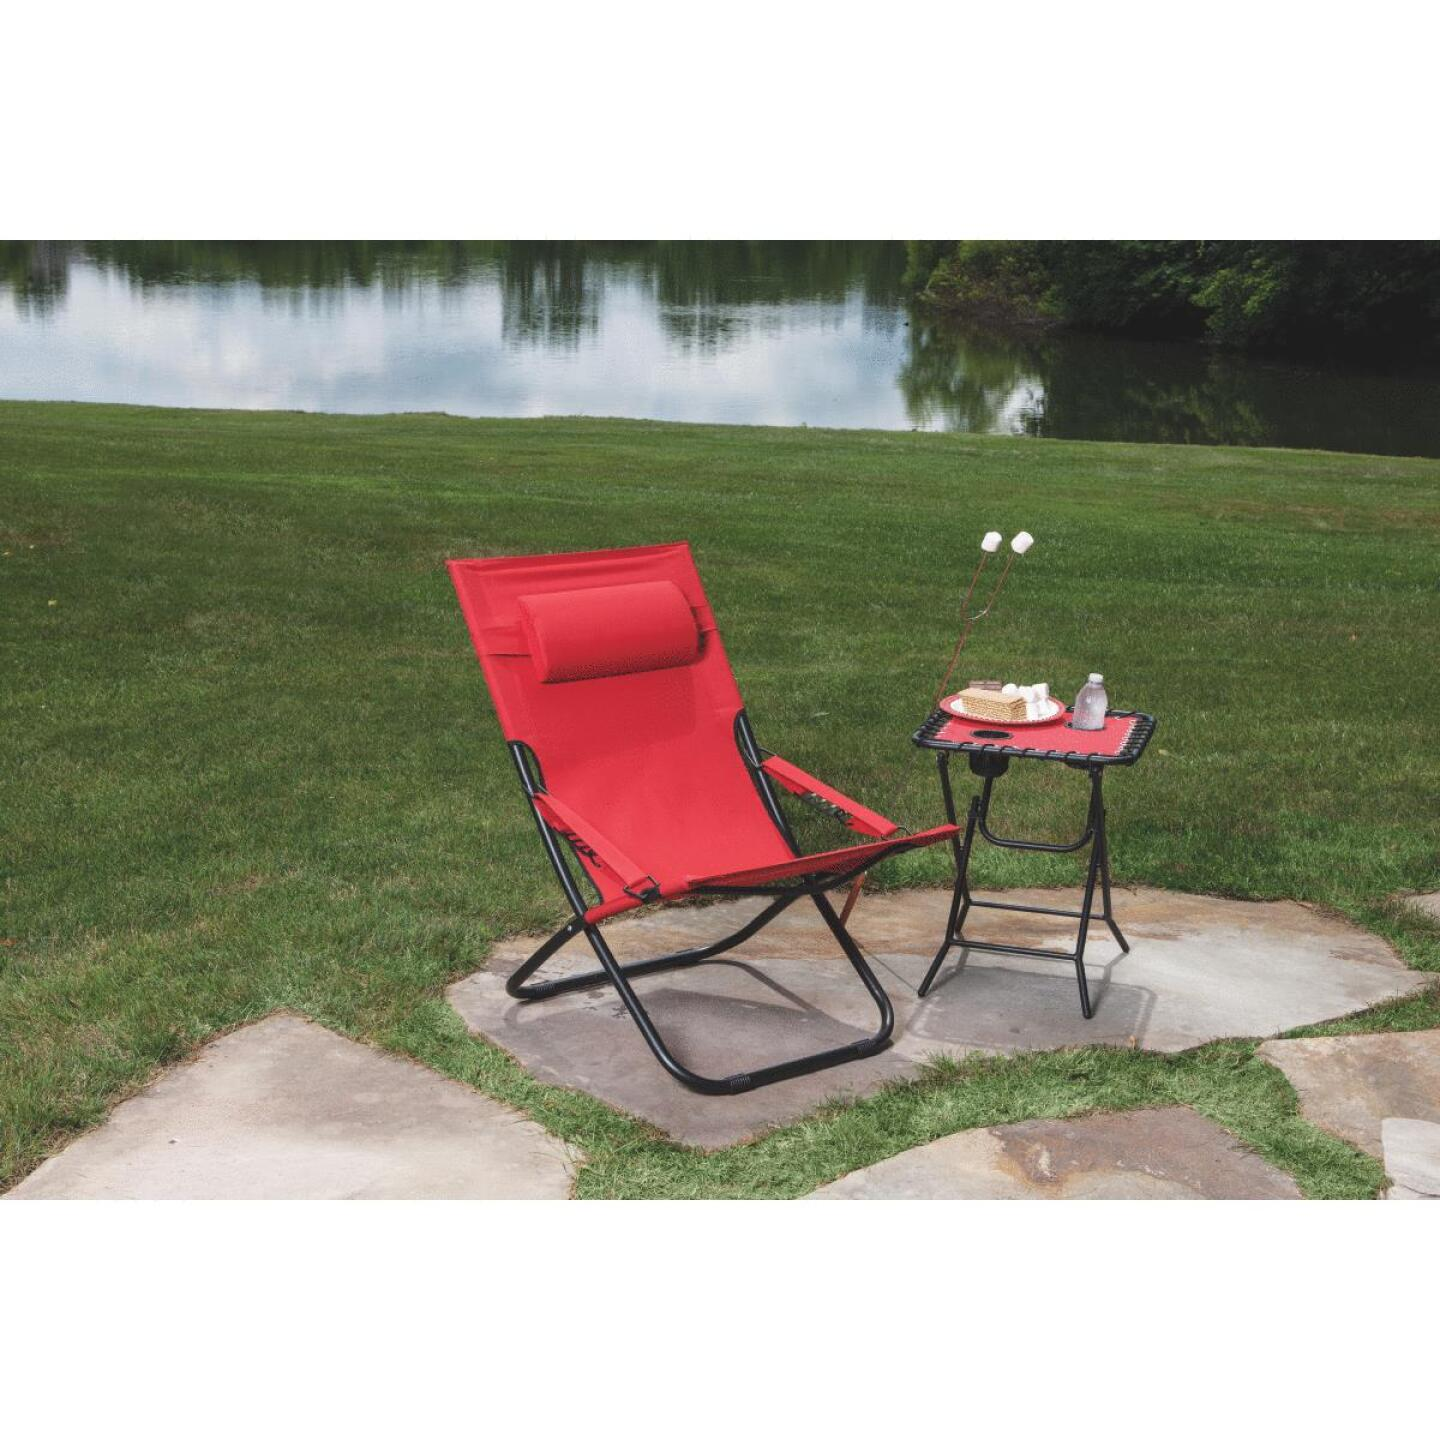 Outdoor Expressions Folding Red Hammock Chair with Headrest Image 4